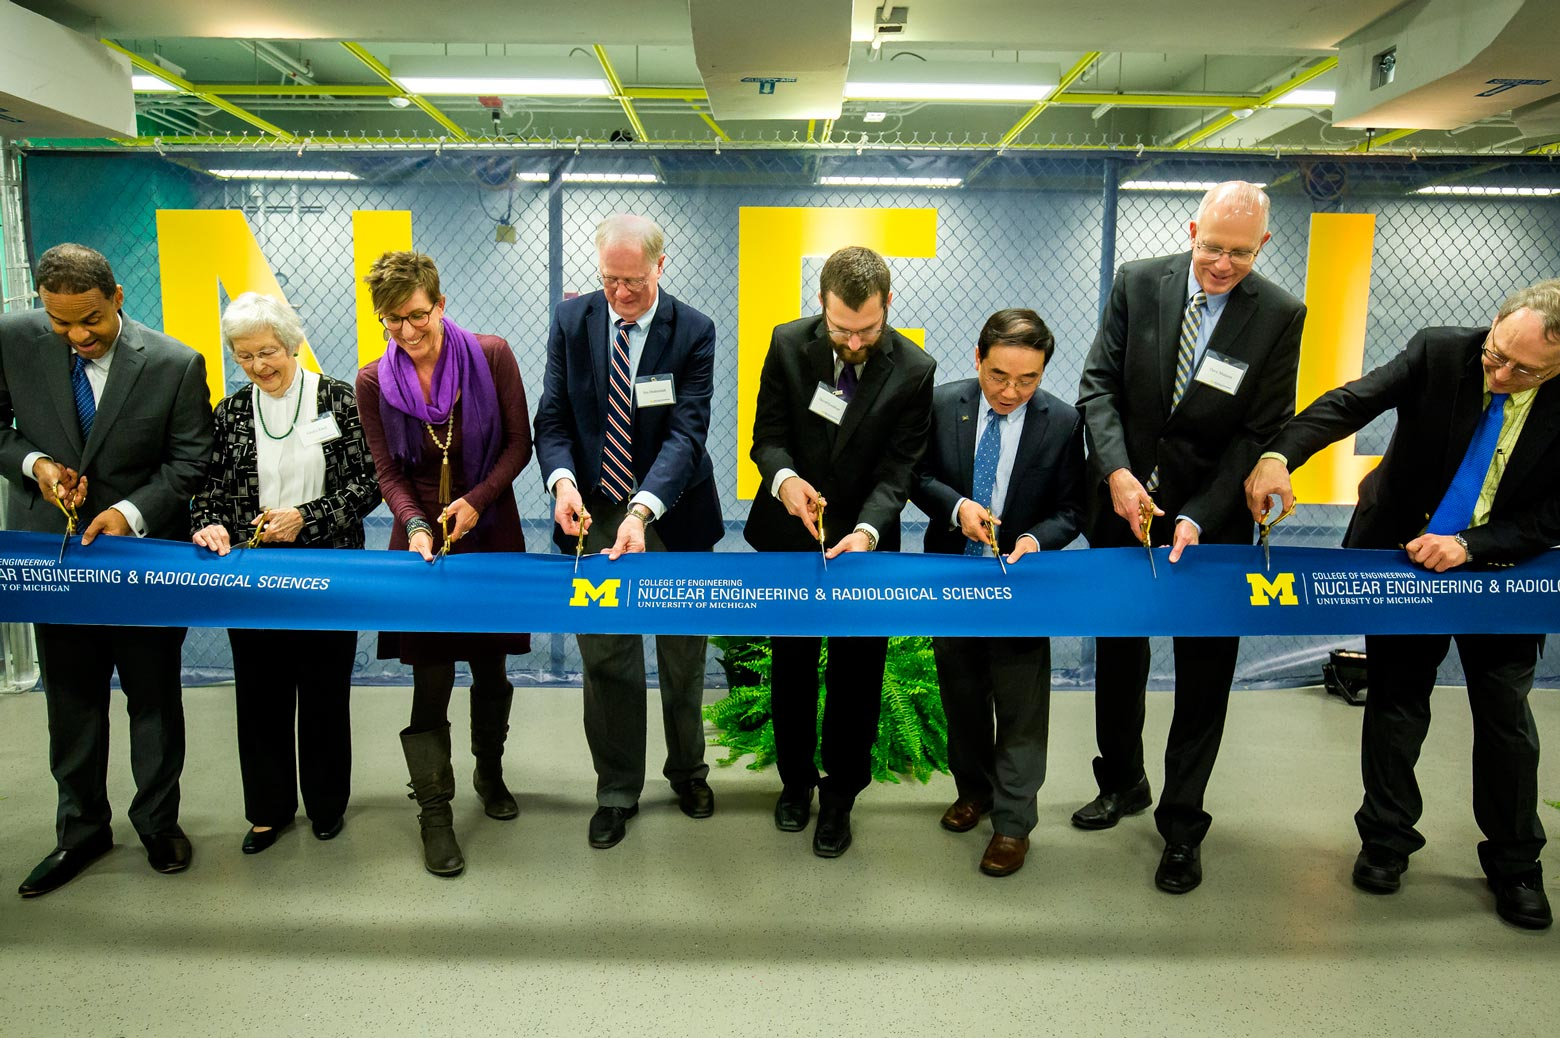 A group of people cut a commemorative ribbon